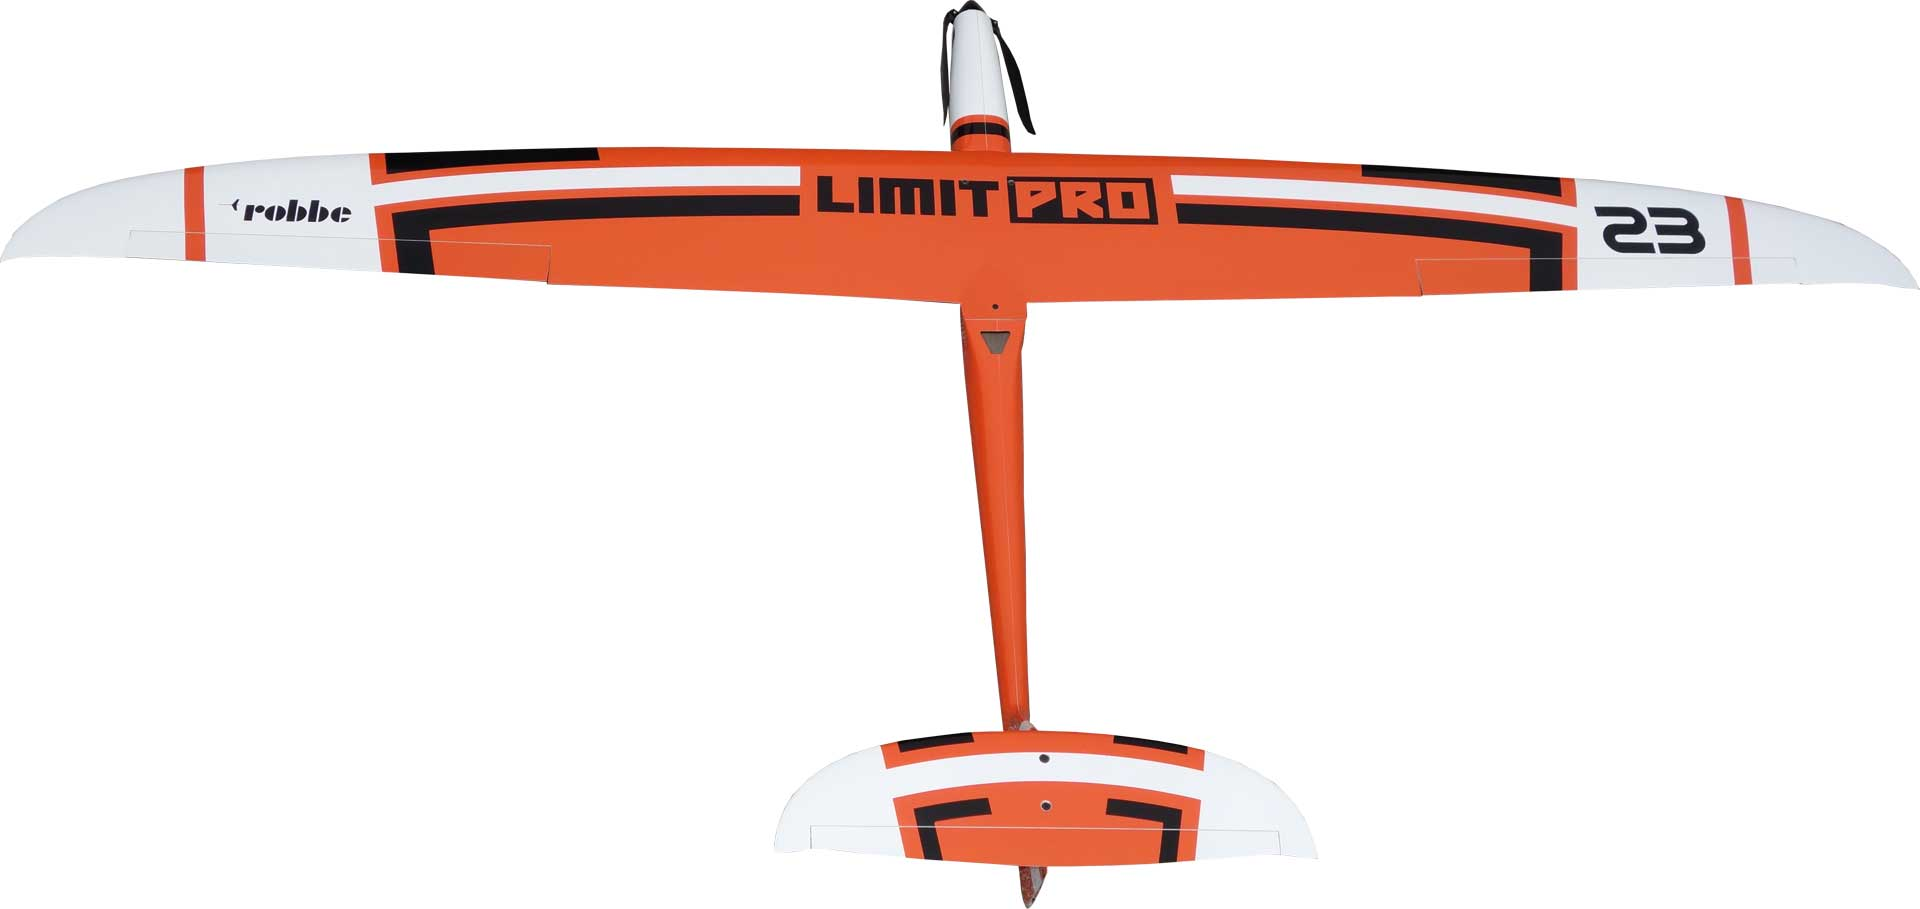 Robbe Modellsport Limit Pro PNP ORANGE with built-in motor and servos, full-GRP/CRP